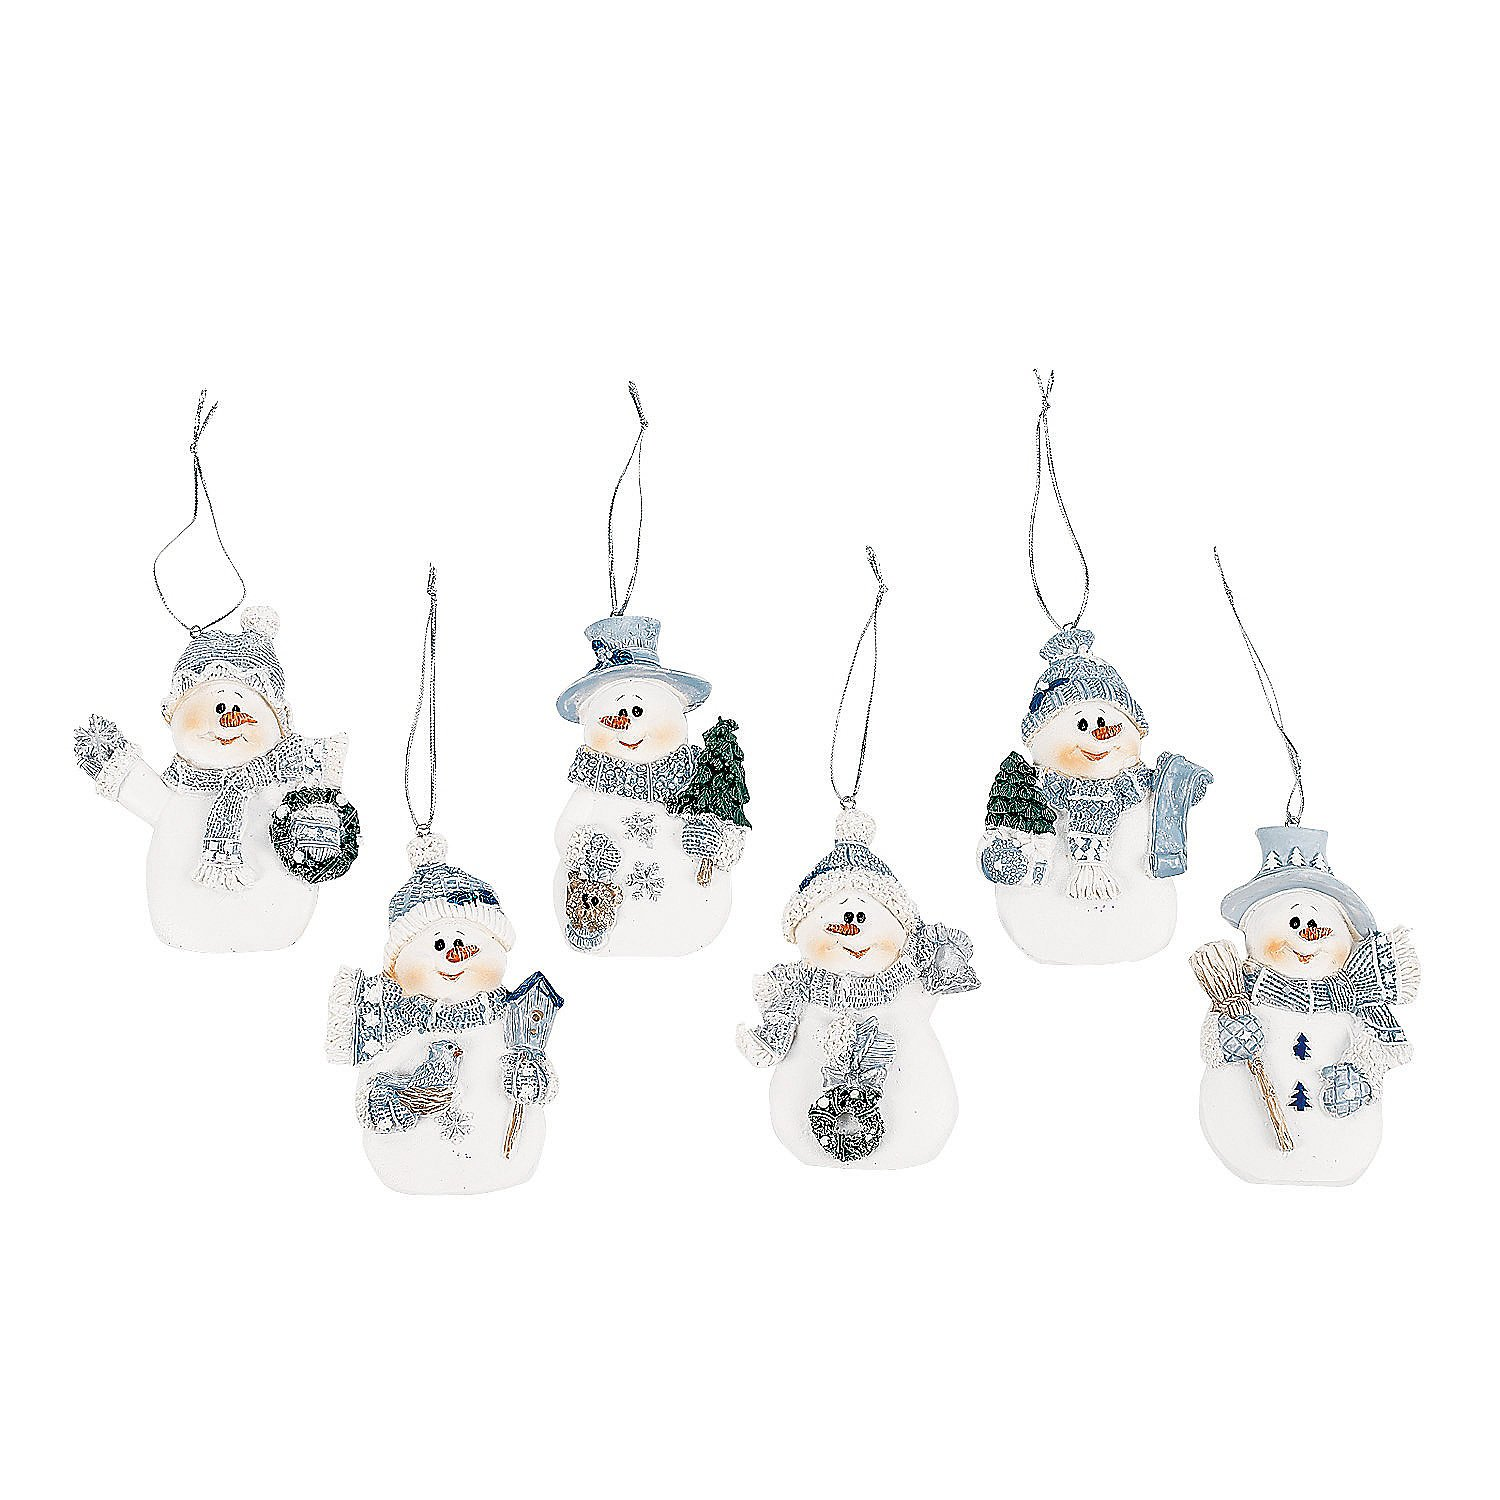 Amazoncom Resin Blue Snowman Christmas Ornaments (Pack Of 12) Home